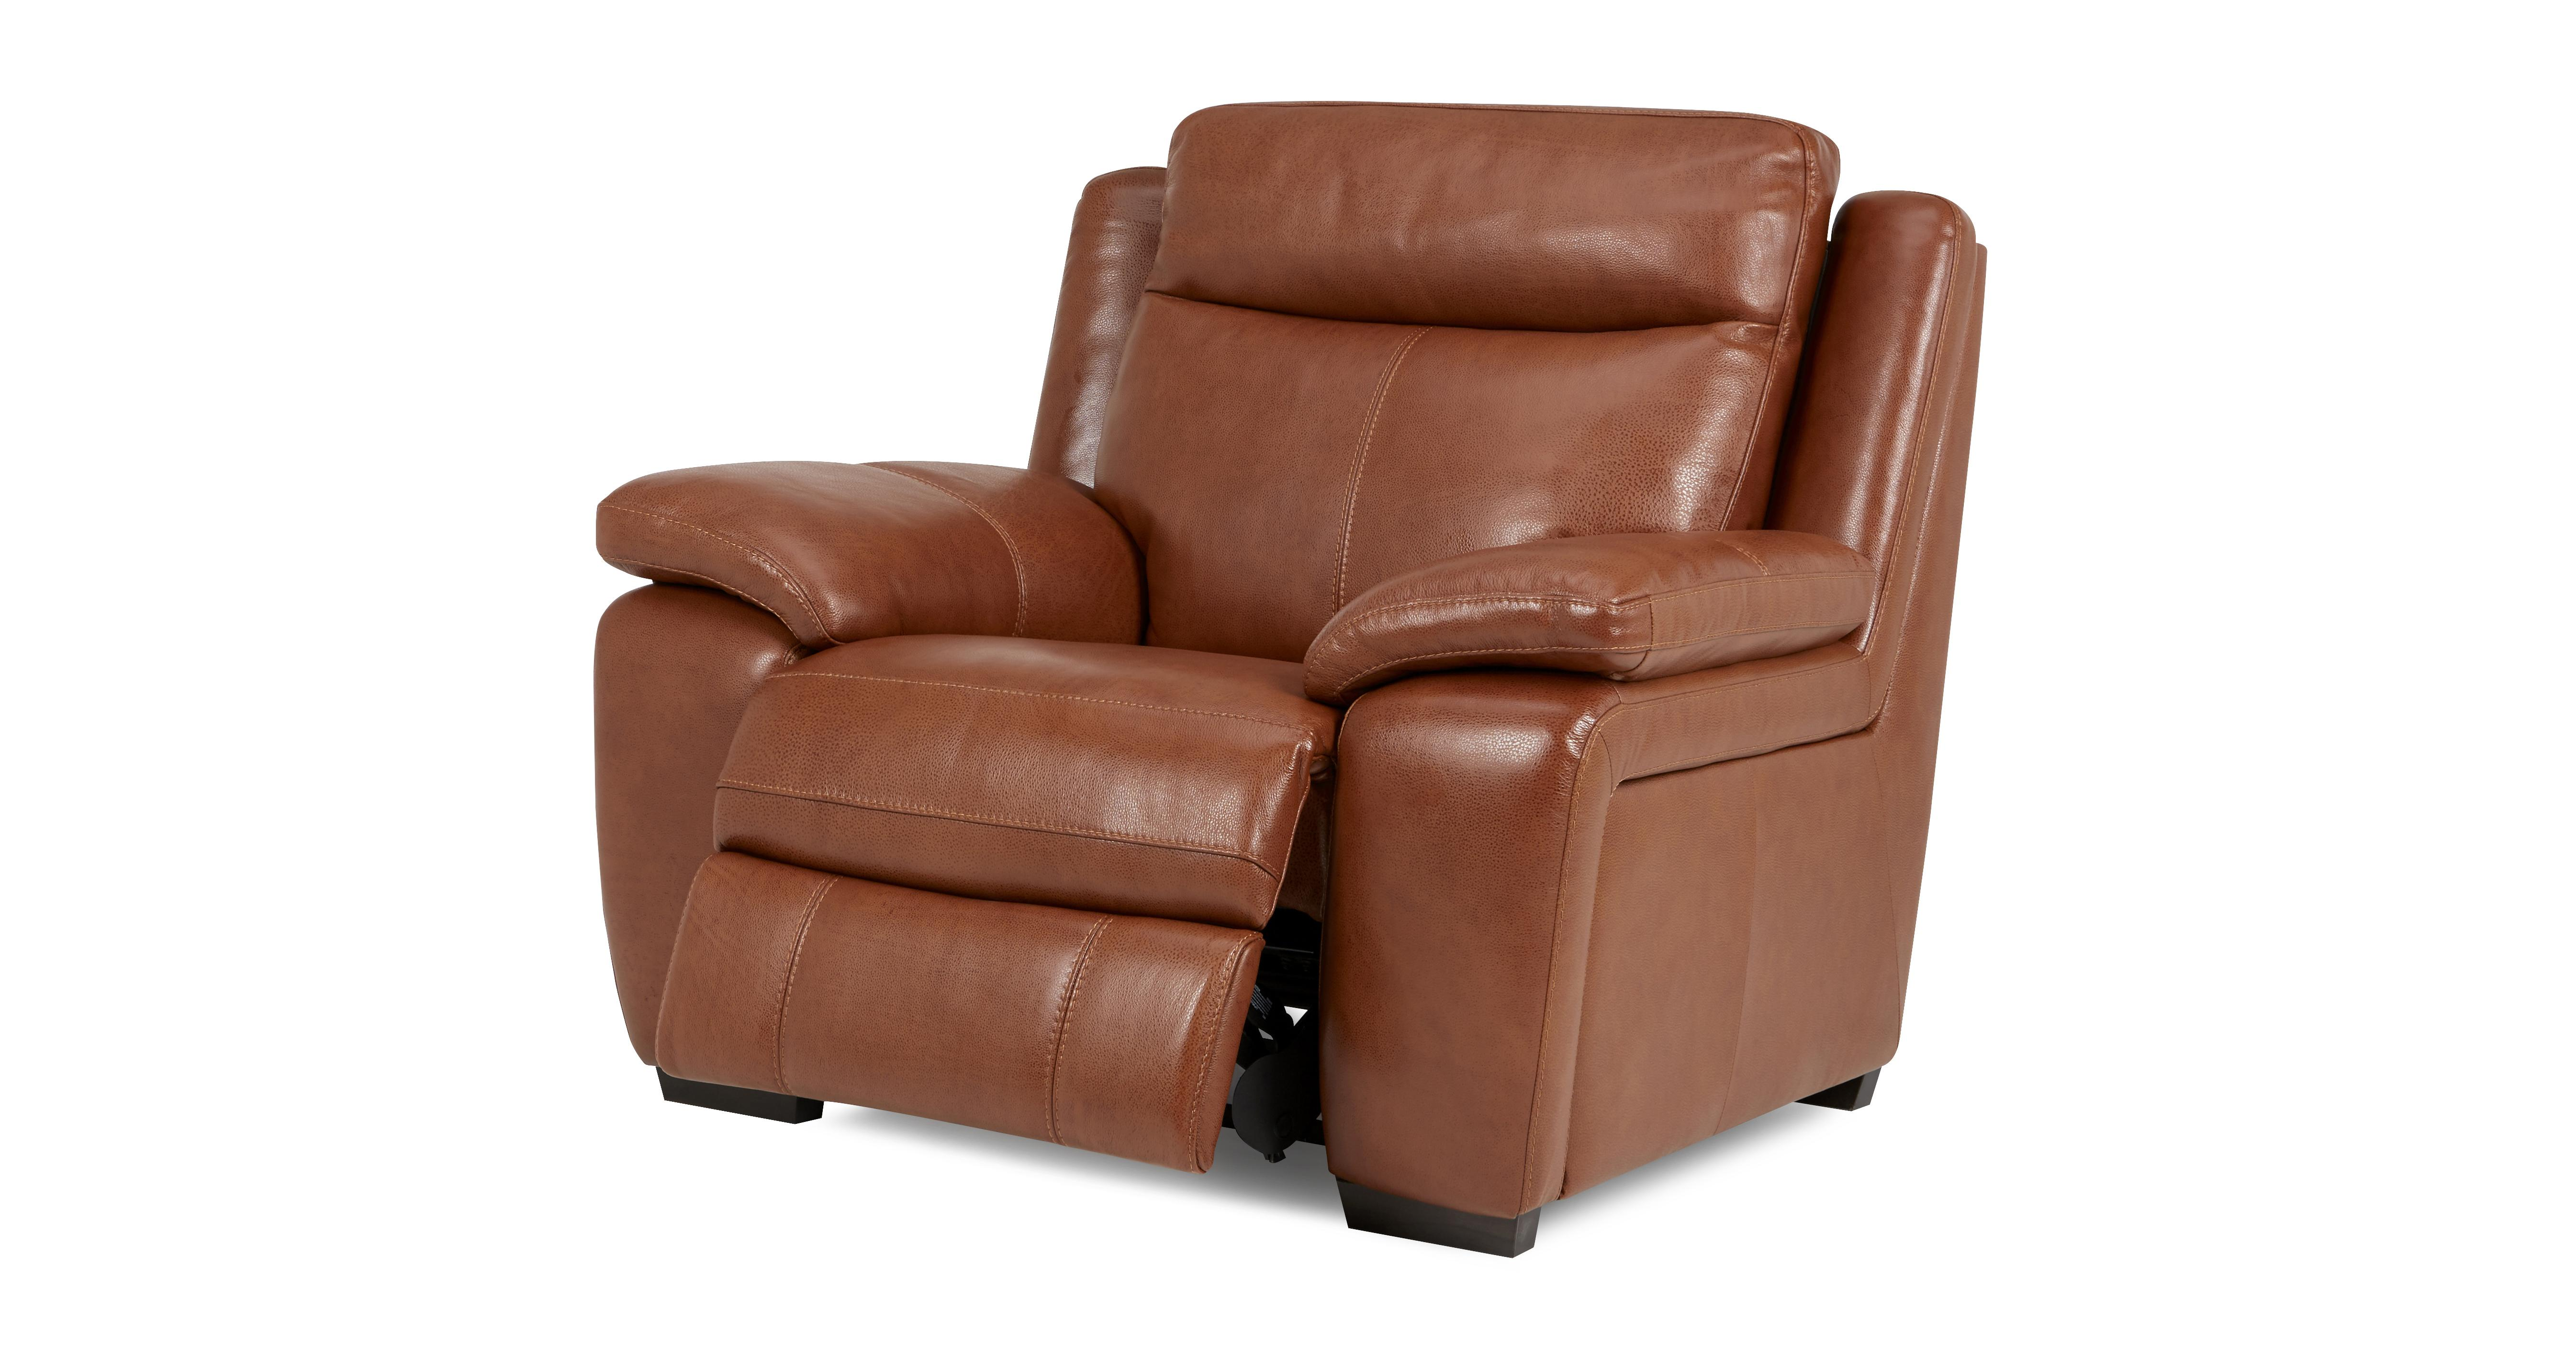 Octavious Leather and Leather Look Electric Recliner Chair Brazil with Leather Look Fabric | DFS  sc 1 st  DFS : leather power recliner chair - islam-shia.org